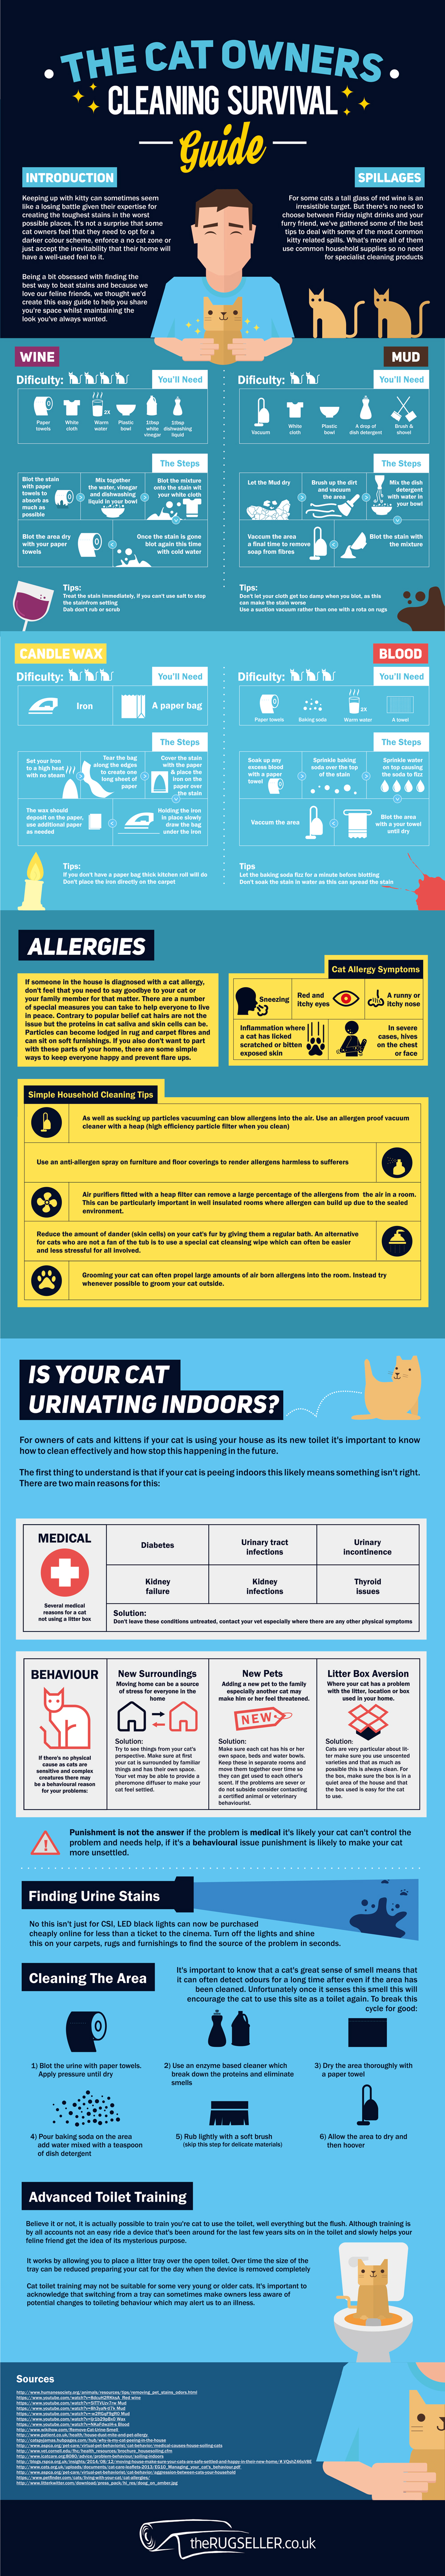 Cat Owners Carpet and Rug Cleaning Guide